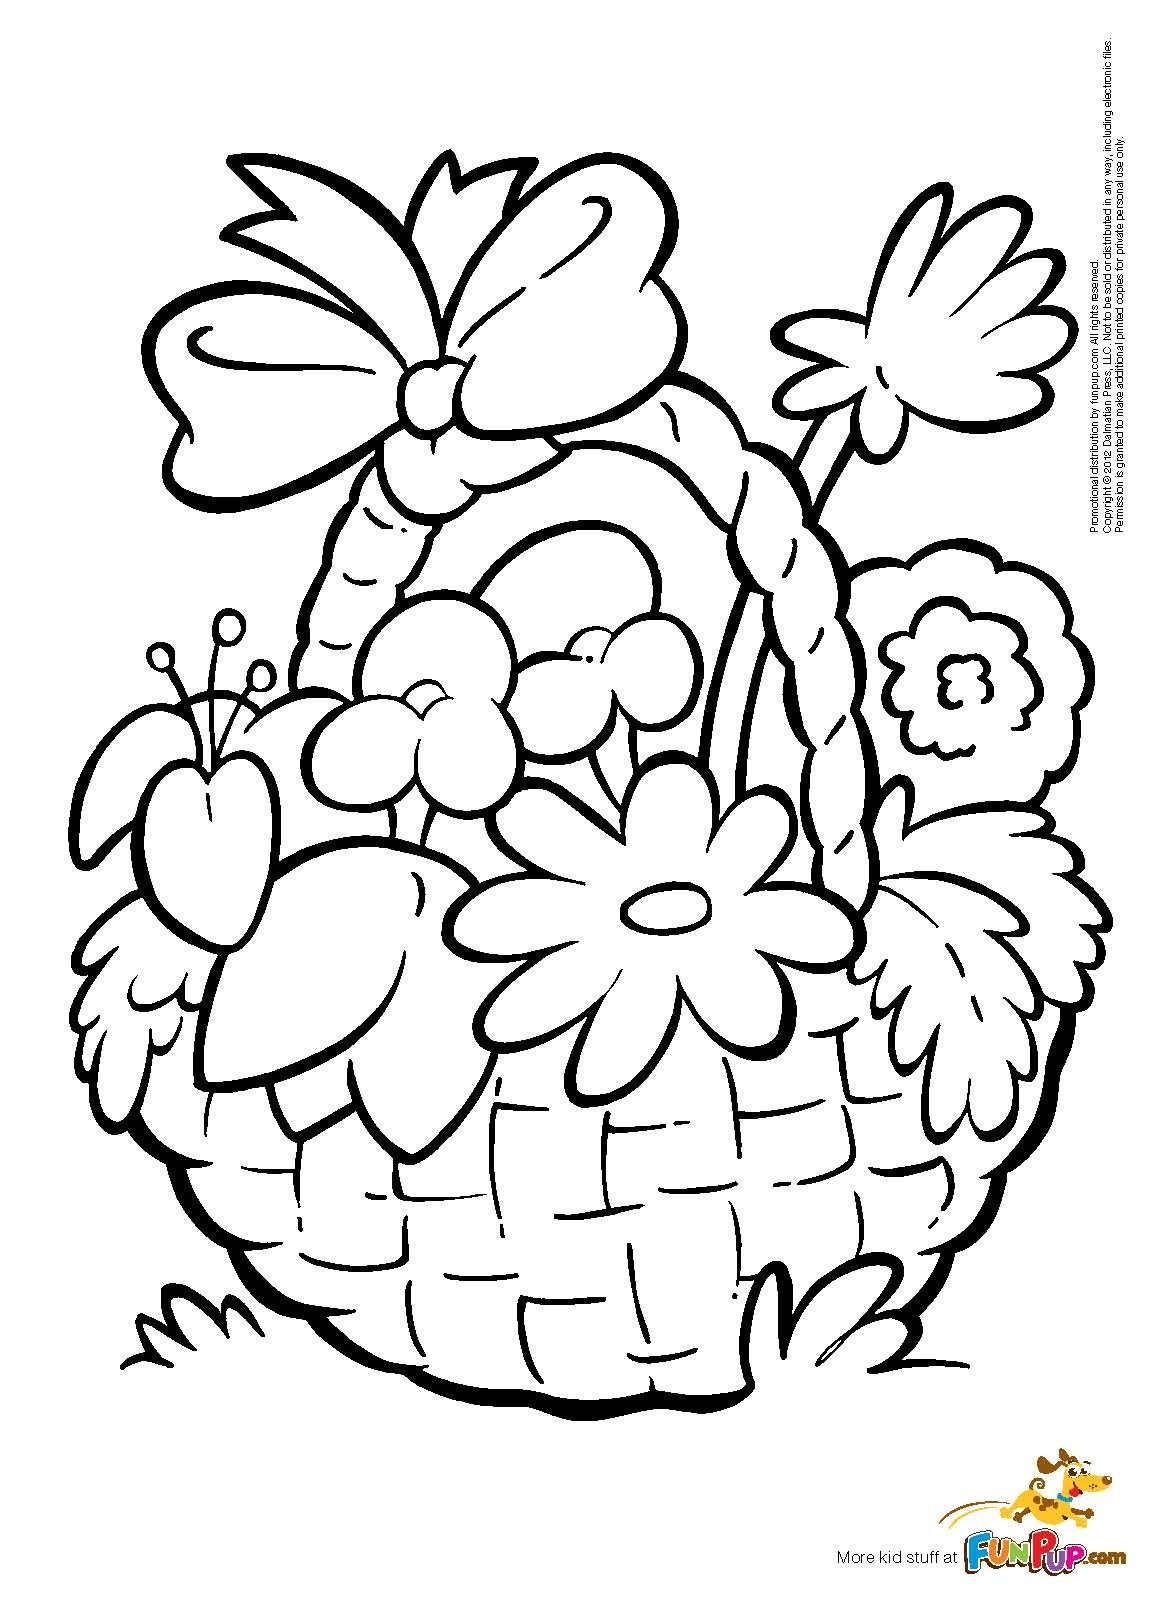 1163x1613 Free Drawing Of Basket Flowers Download Clip Art For Flower